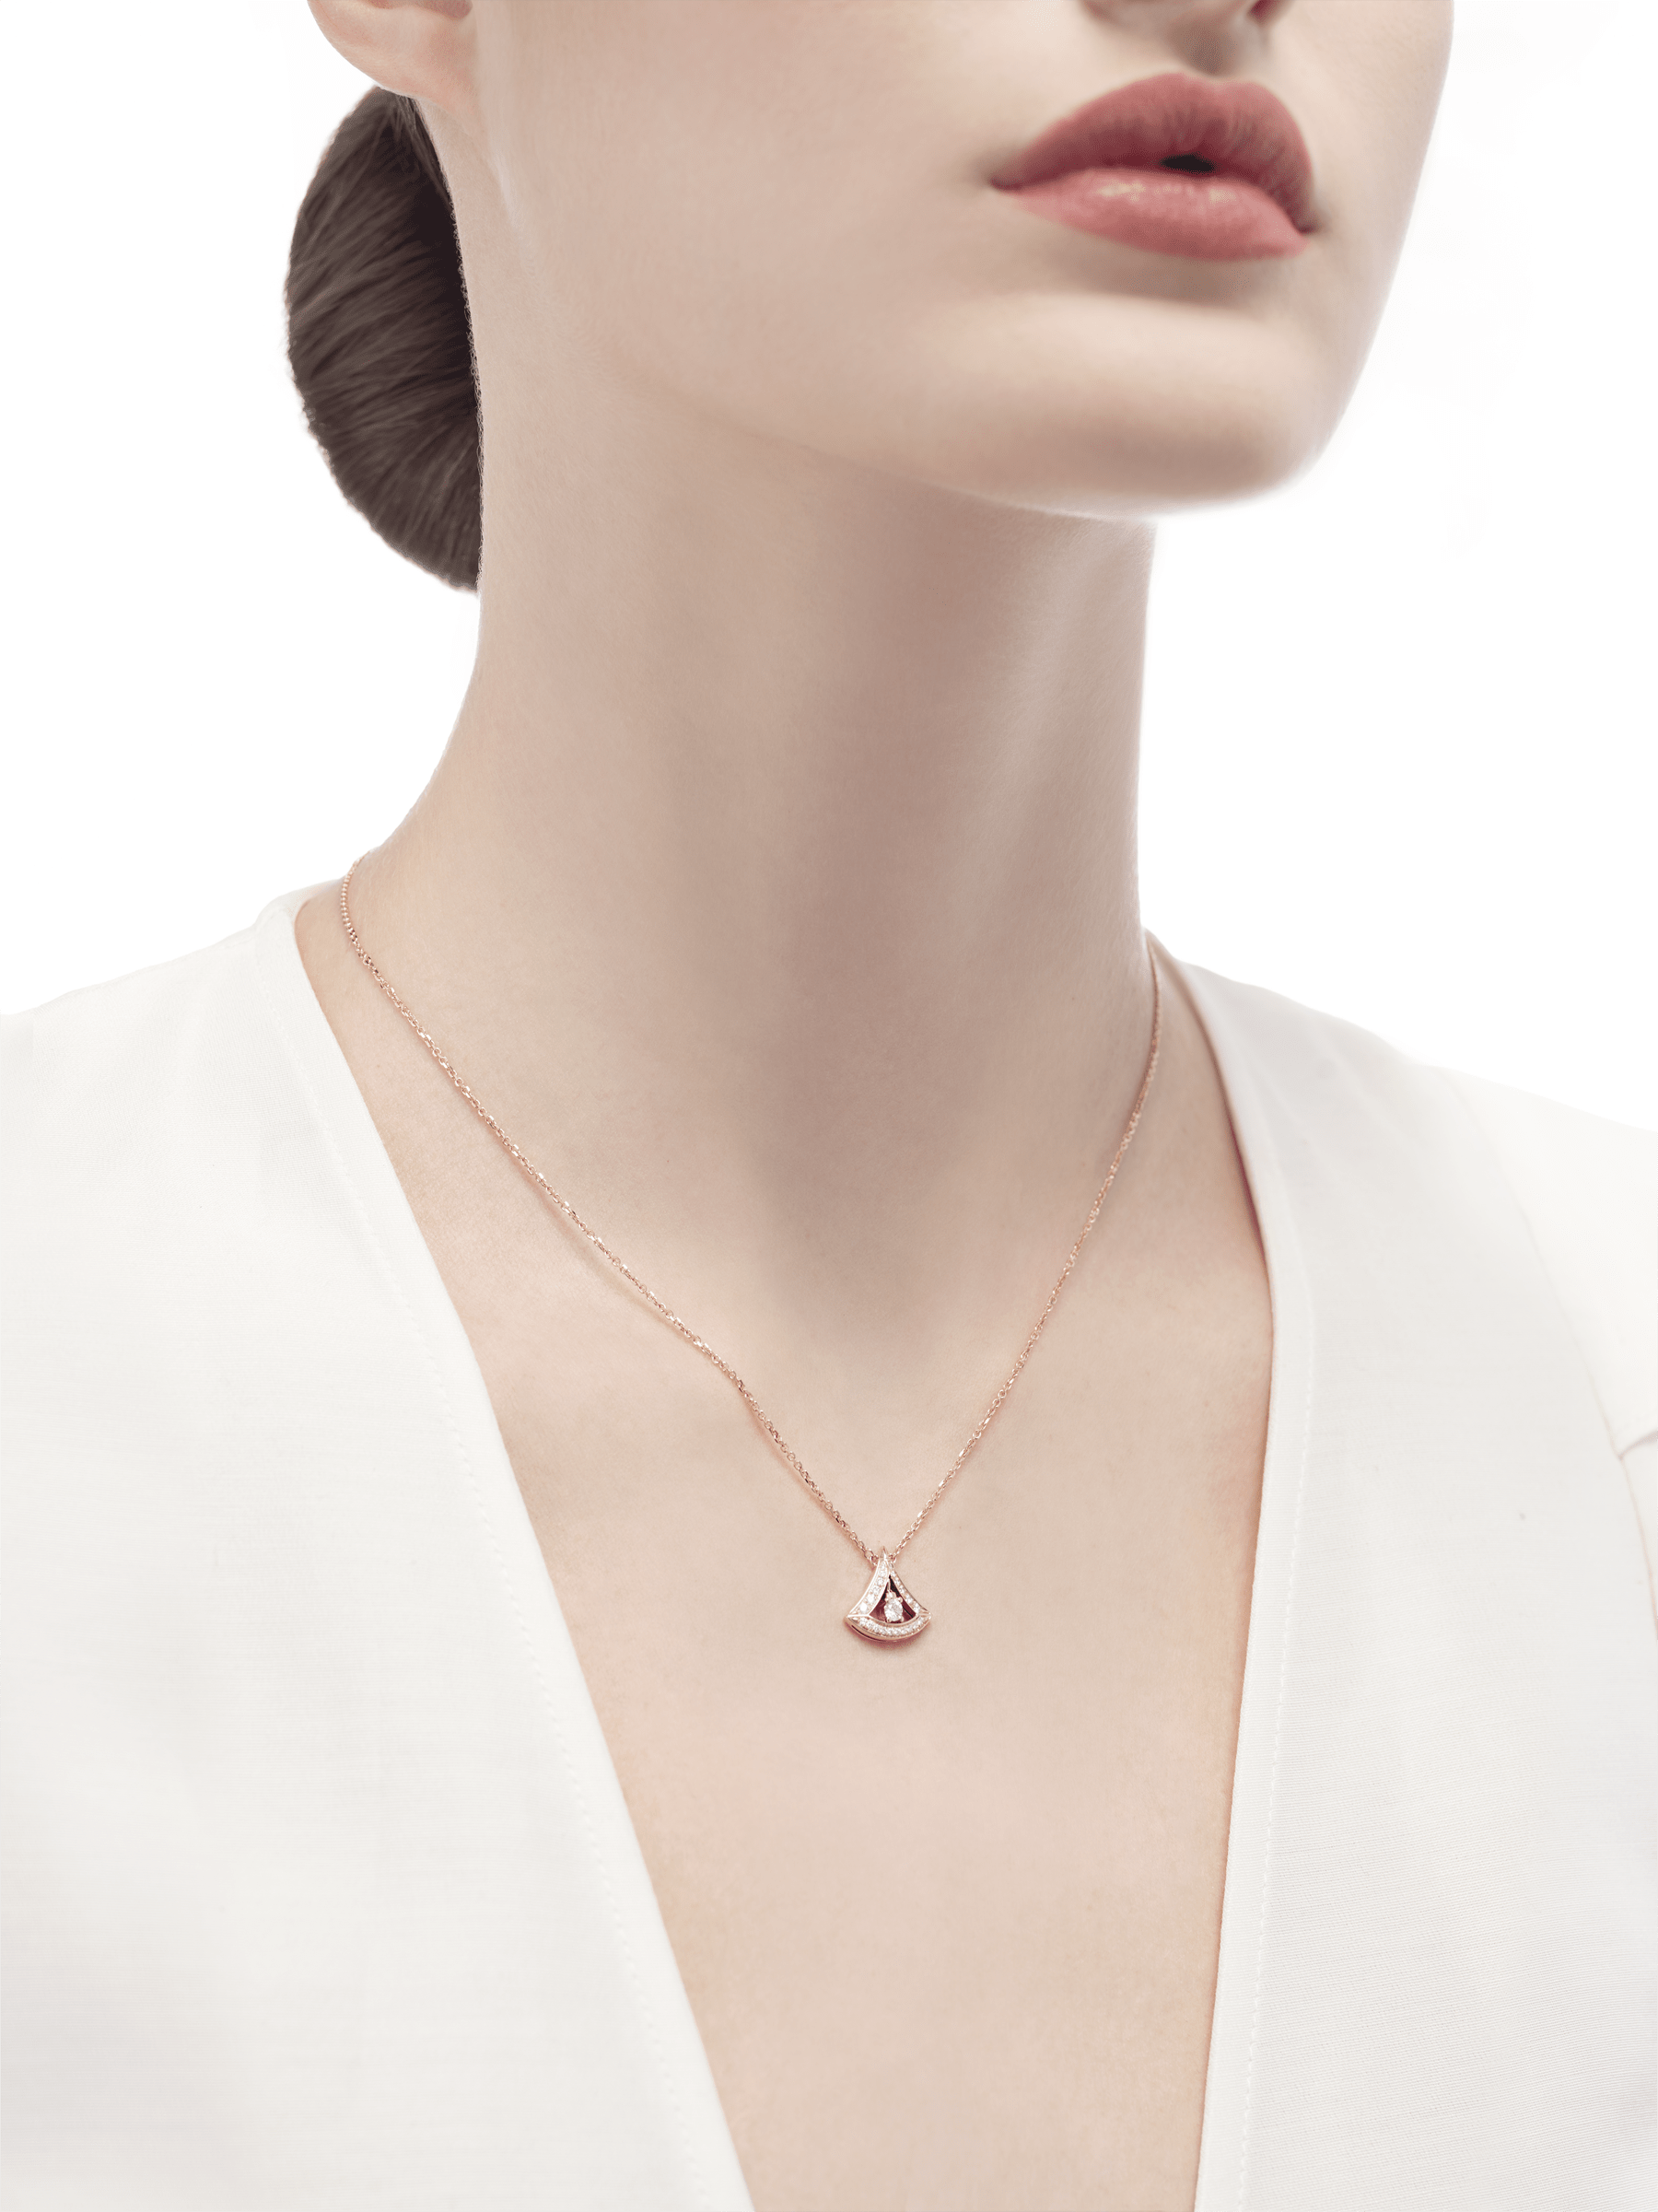 DIVAS' DREAM 18 kt rose gold openwork necklace with 18 kt rose gold pendant set with a central diamond and pavé diamonds. 354363 image 3